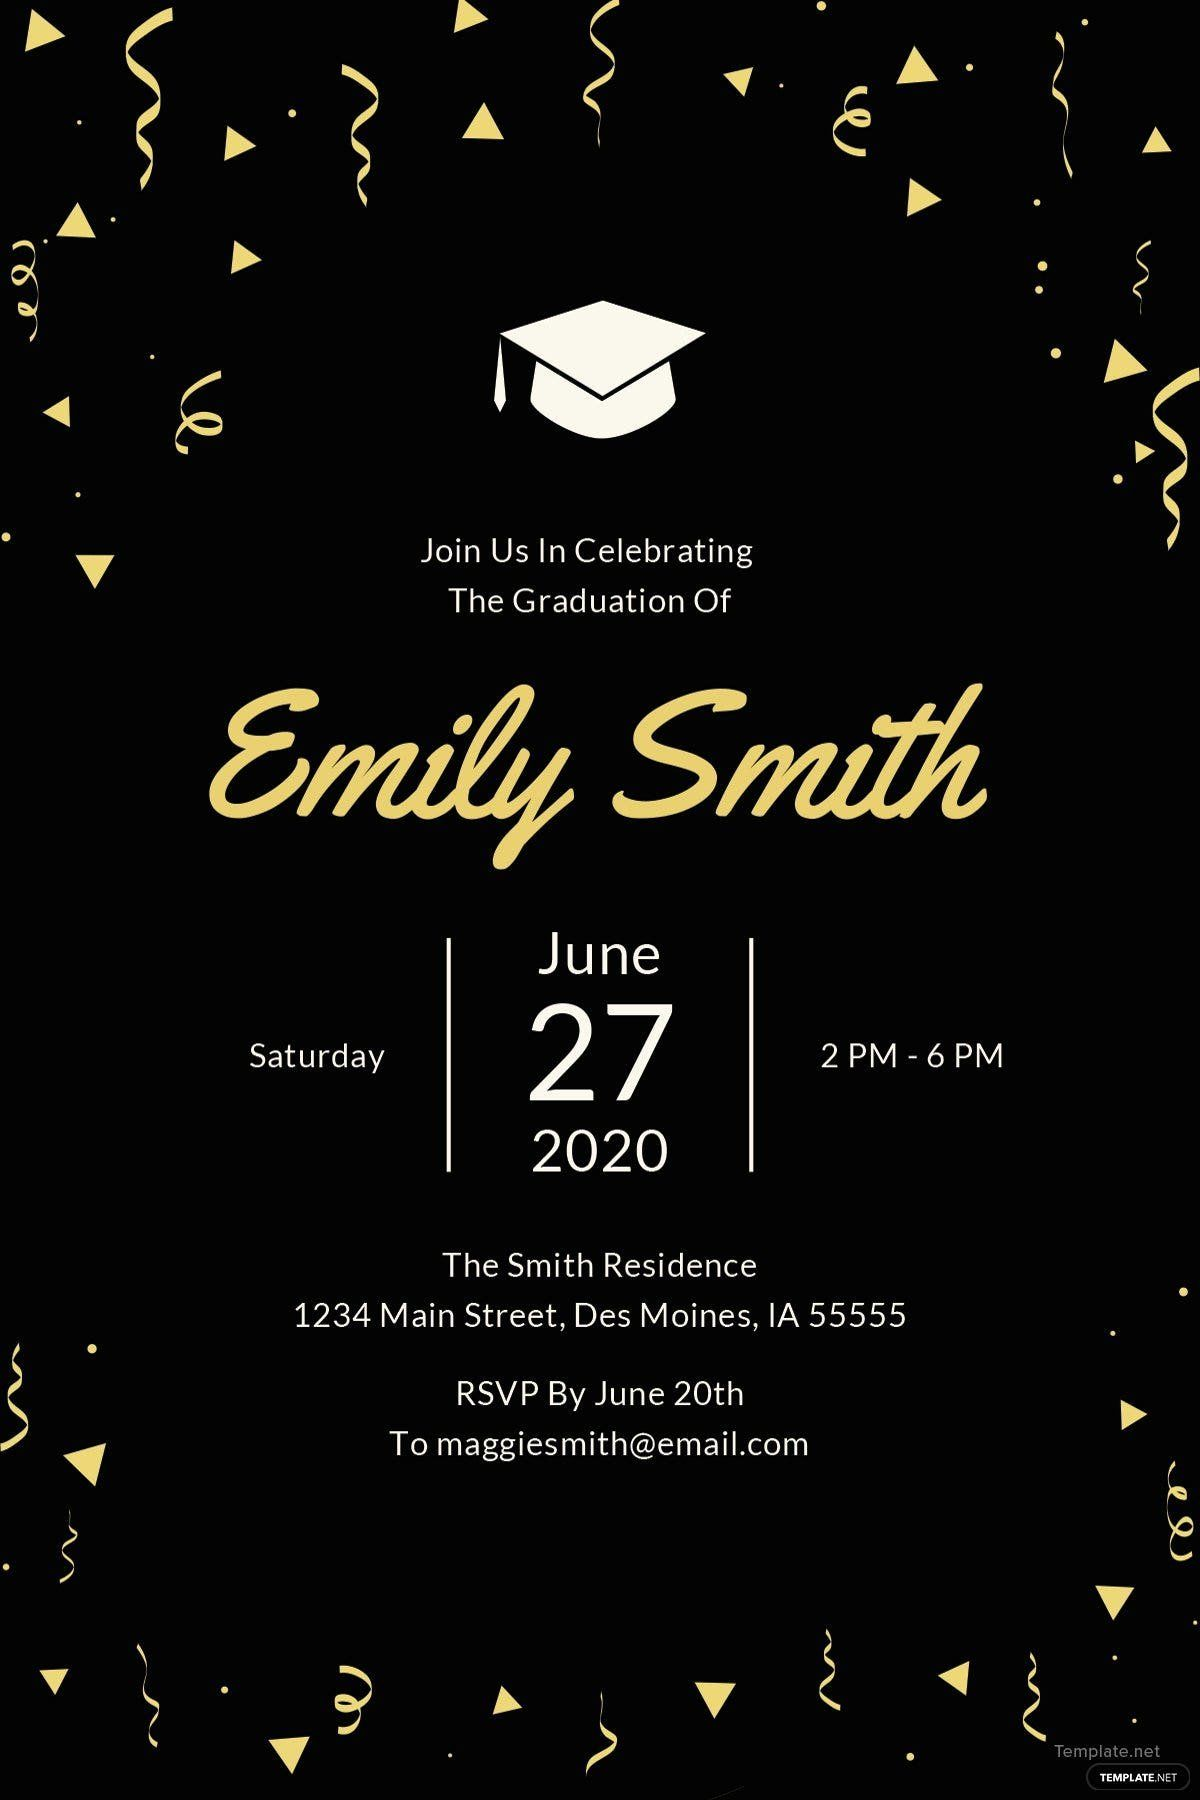 Free Printable Graduation Announcement Template Luxury Free Gradua Graduation Invitations Template Graduation Party Invitations Templates Party Invite Template